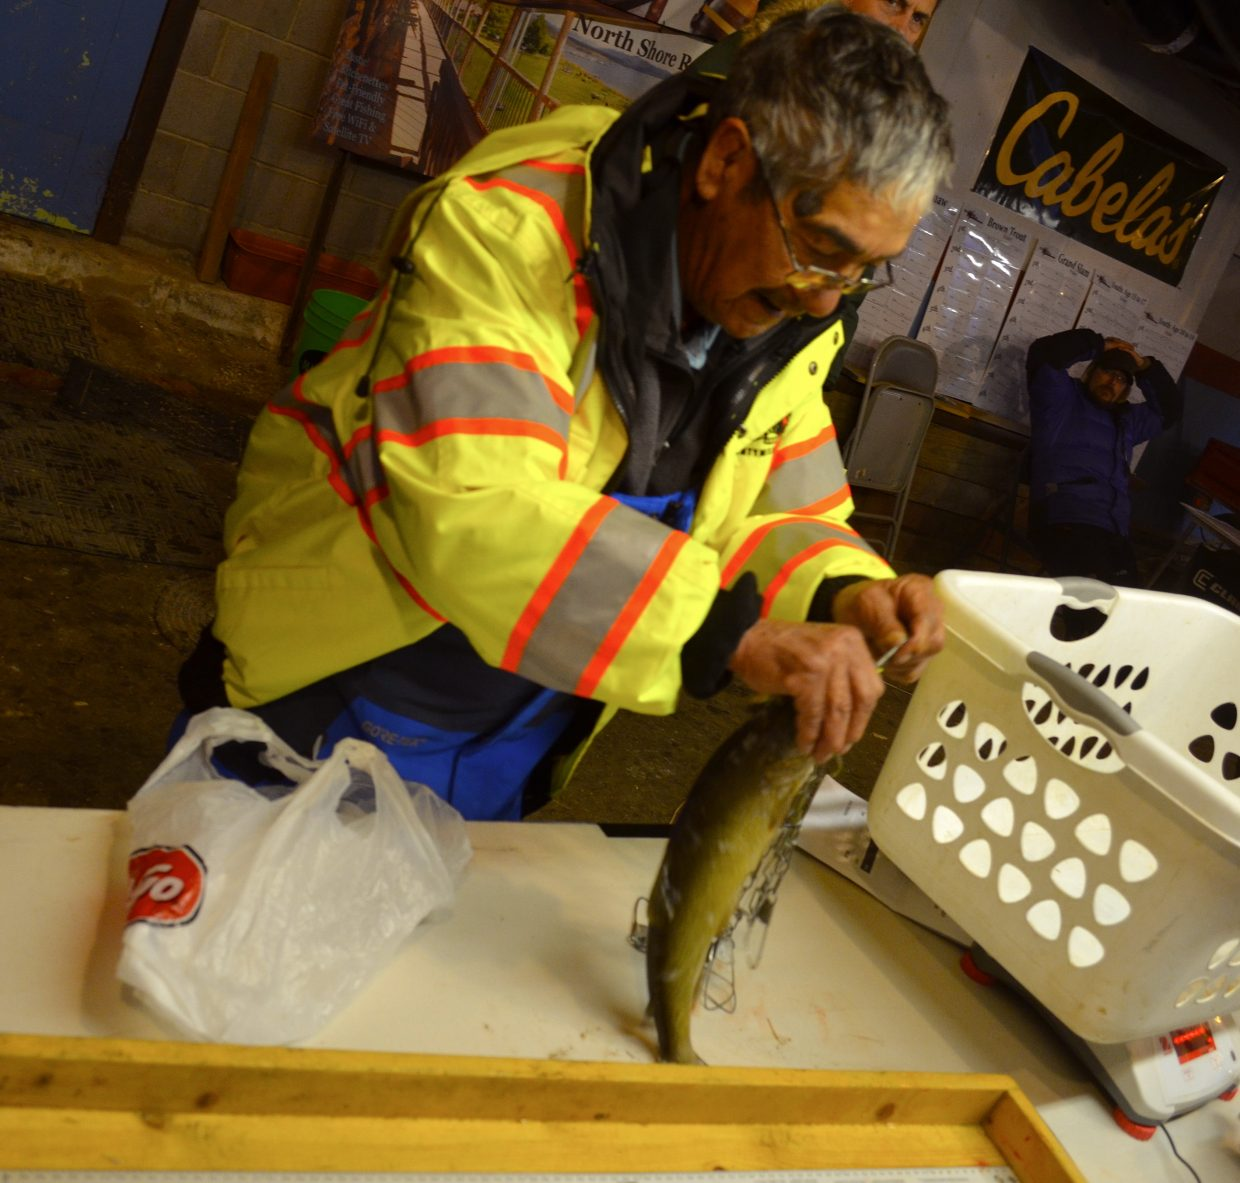 Crecencio Salazar, from Hayden, pulls one of his recent catches out to be weighed at the North Shore Resort over the weekend.